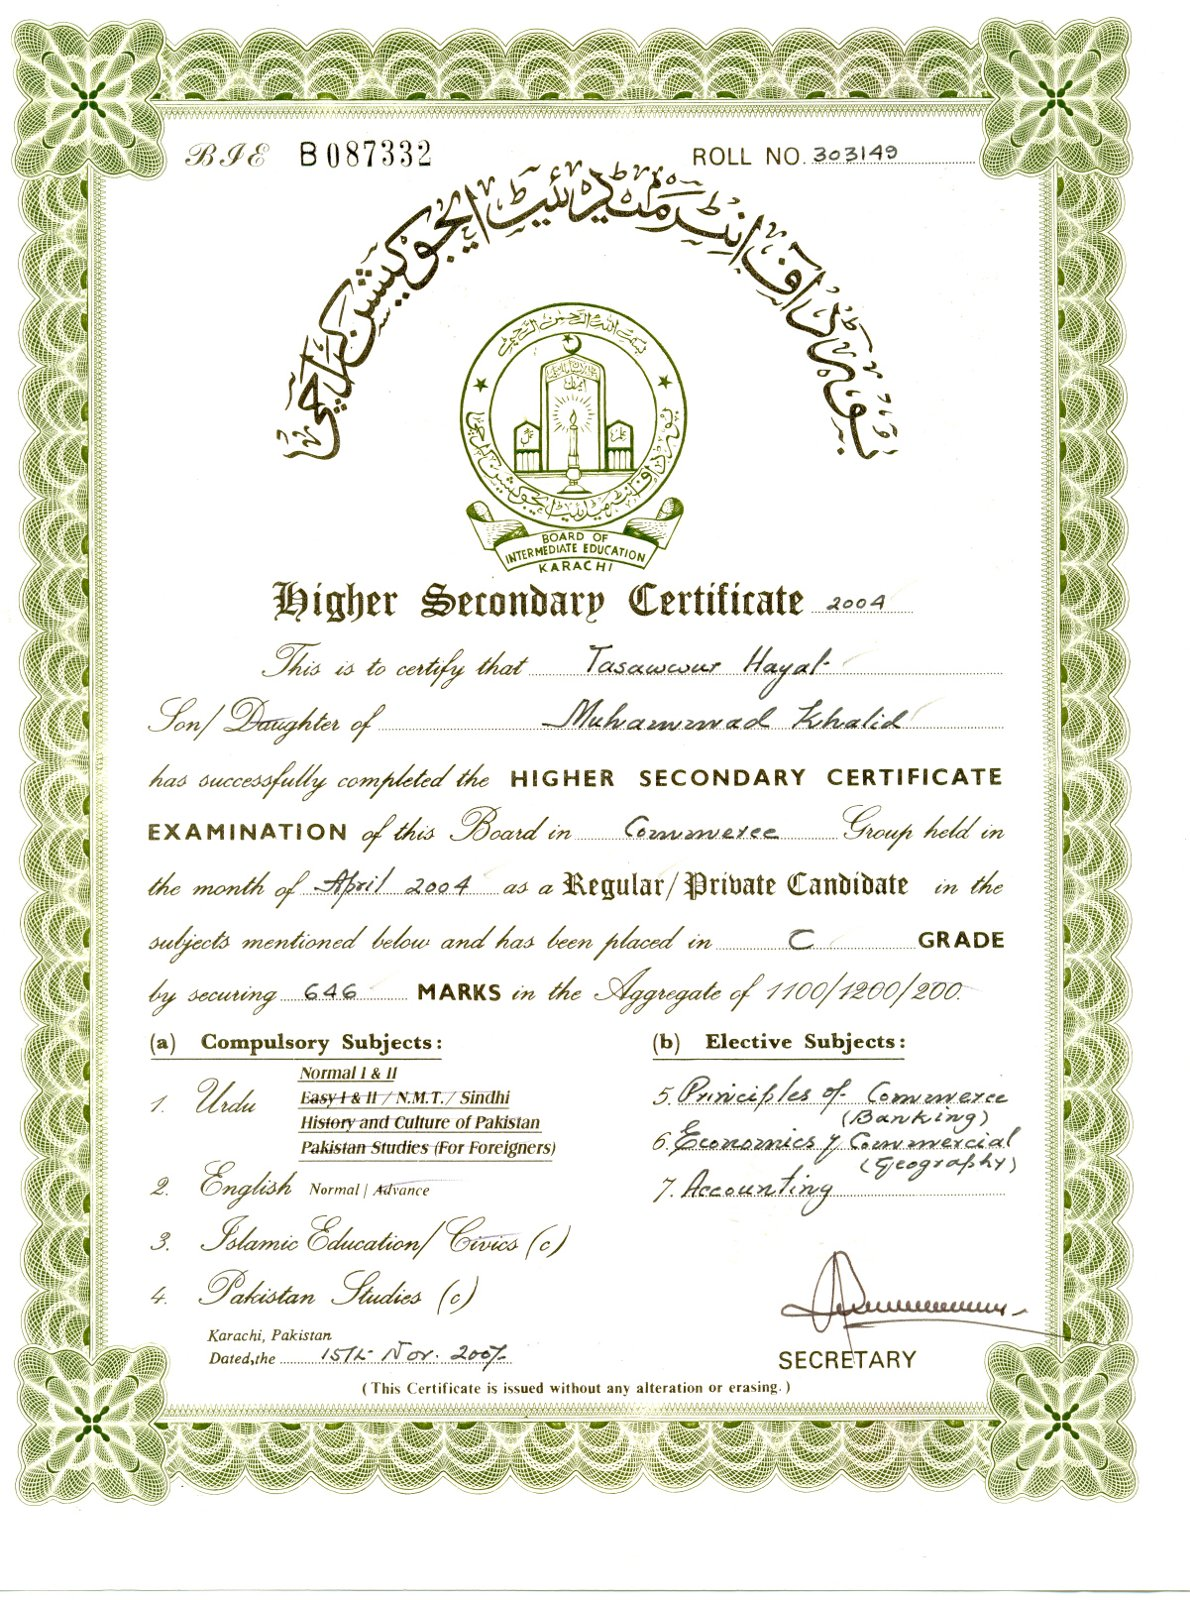 inter certificate Welcome: Image Gallery